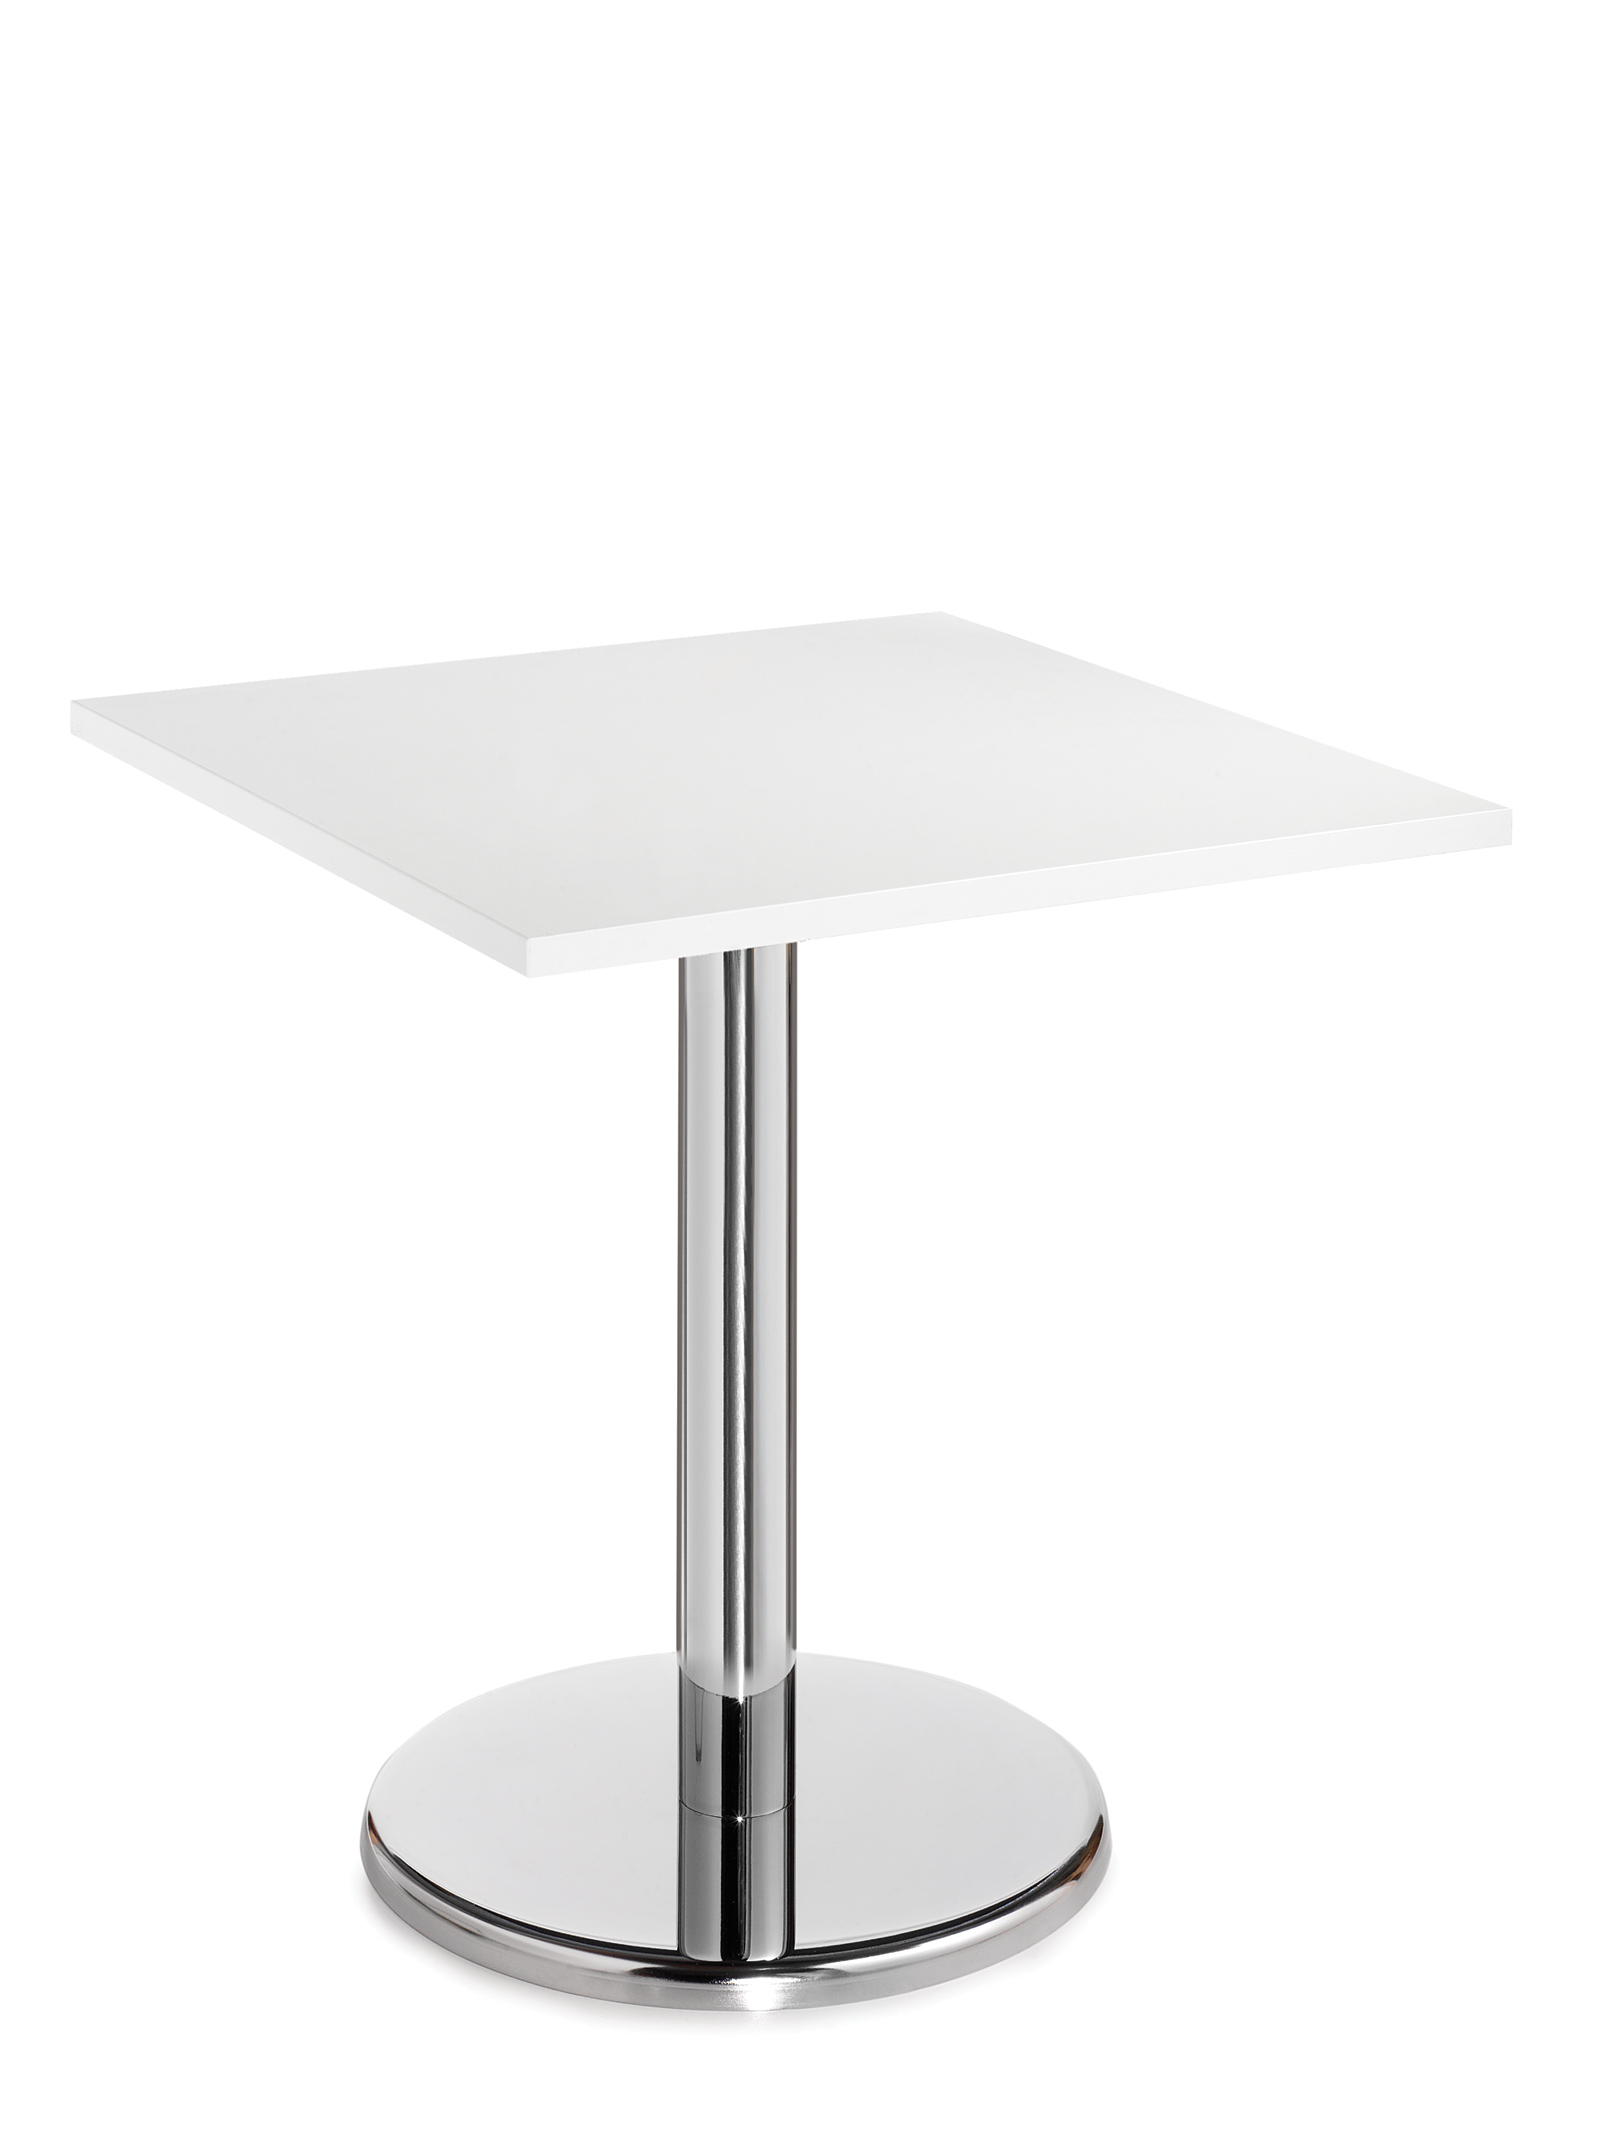 Pisa square table with round chrome base 700mm - white